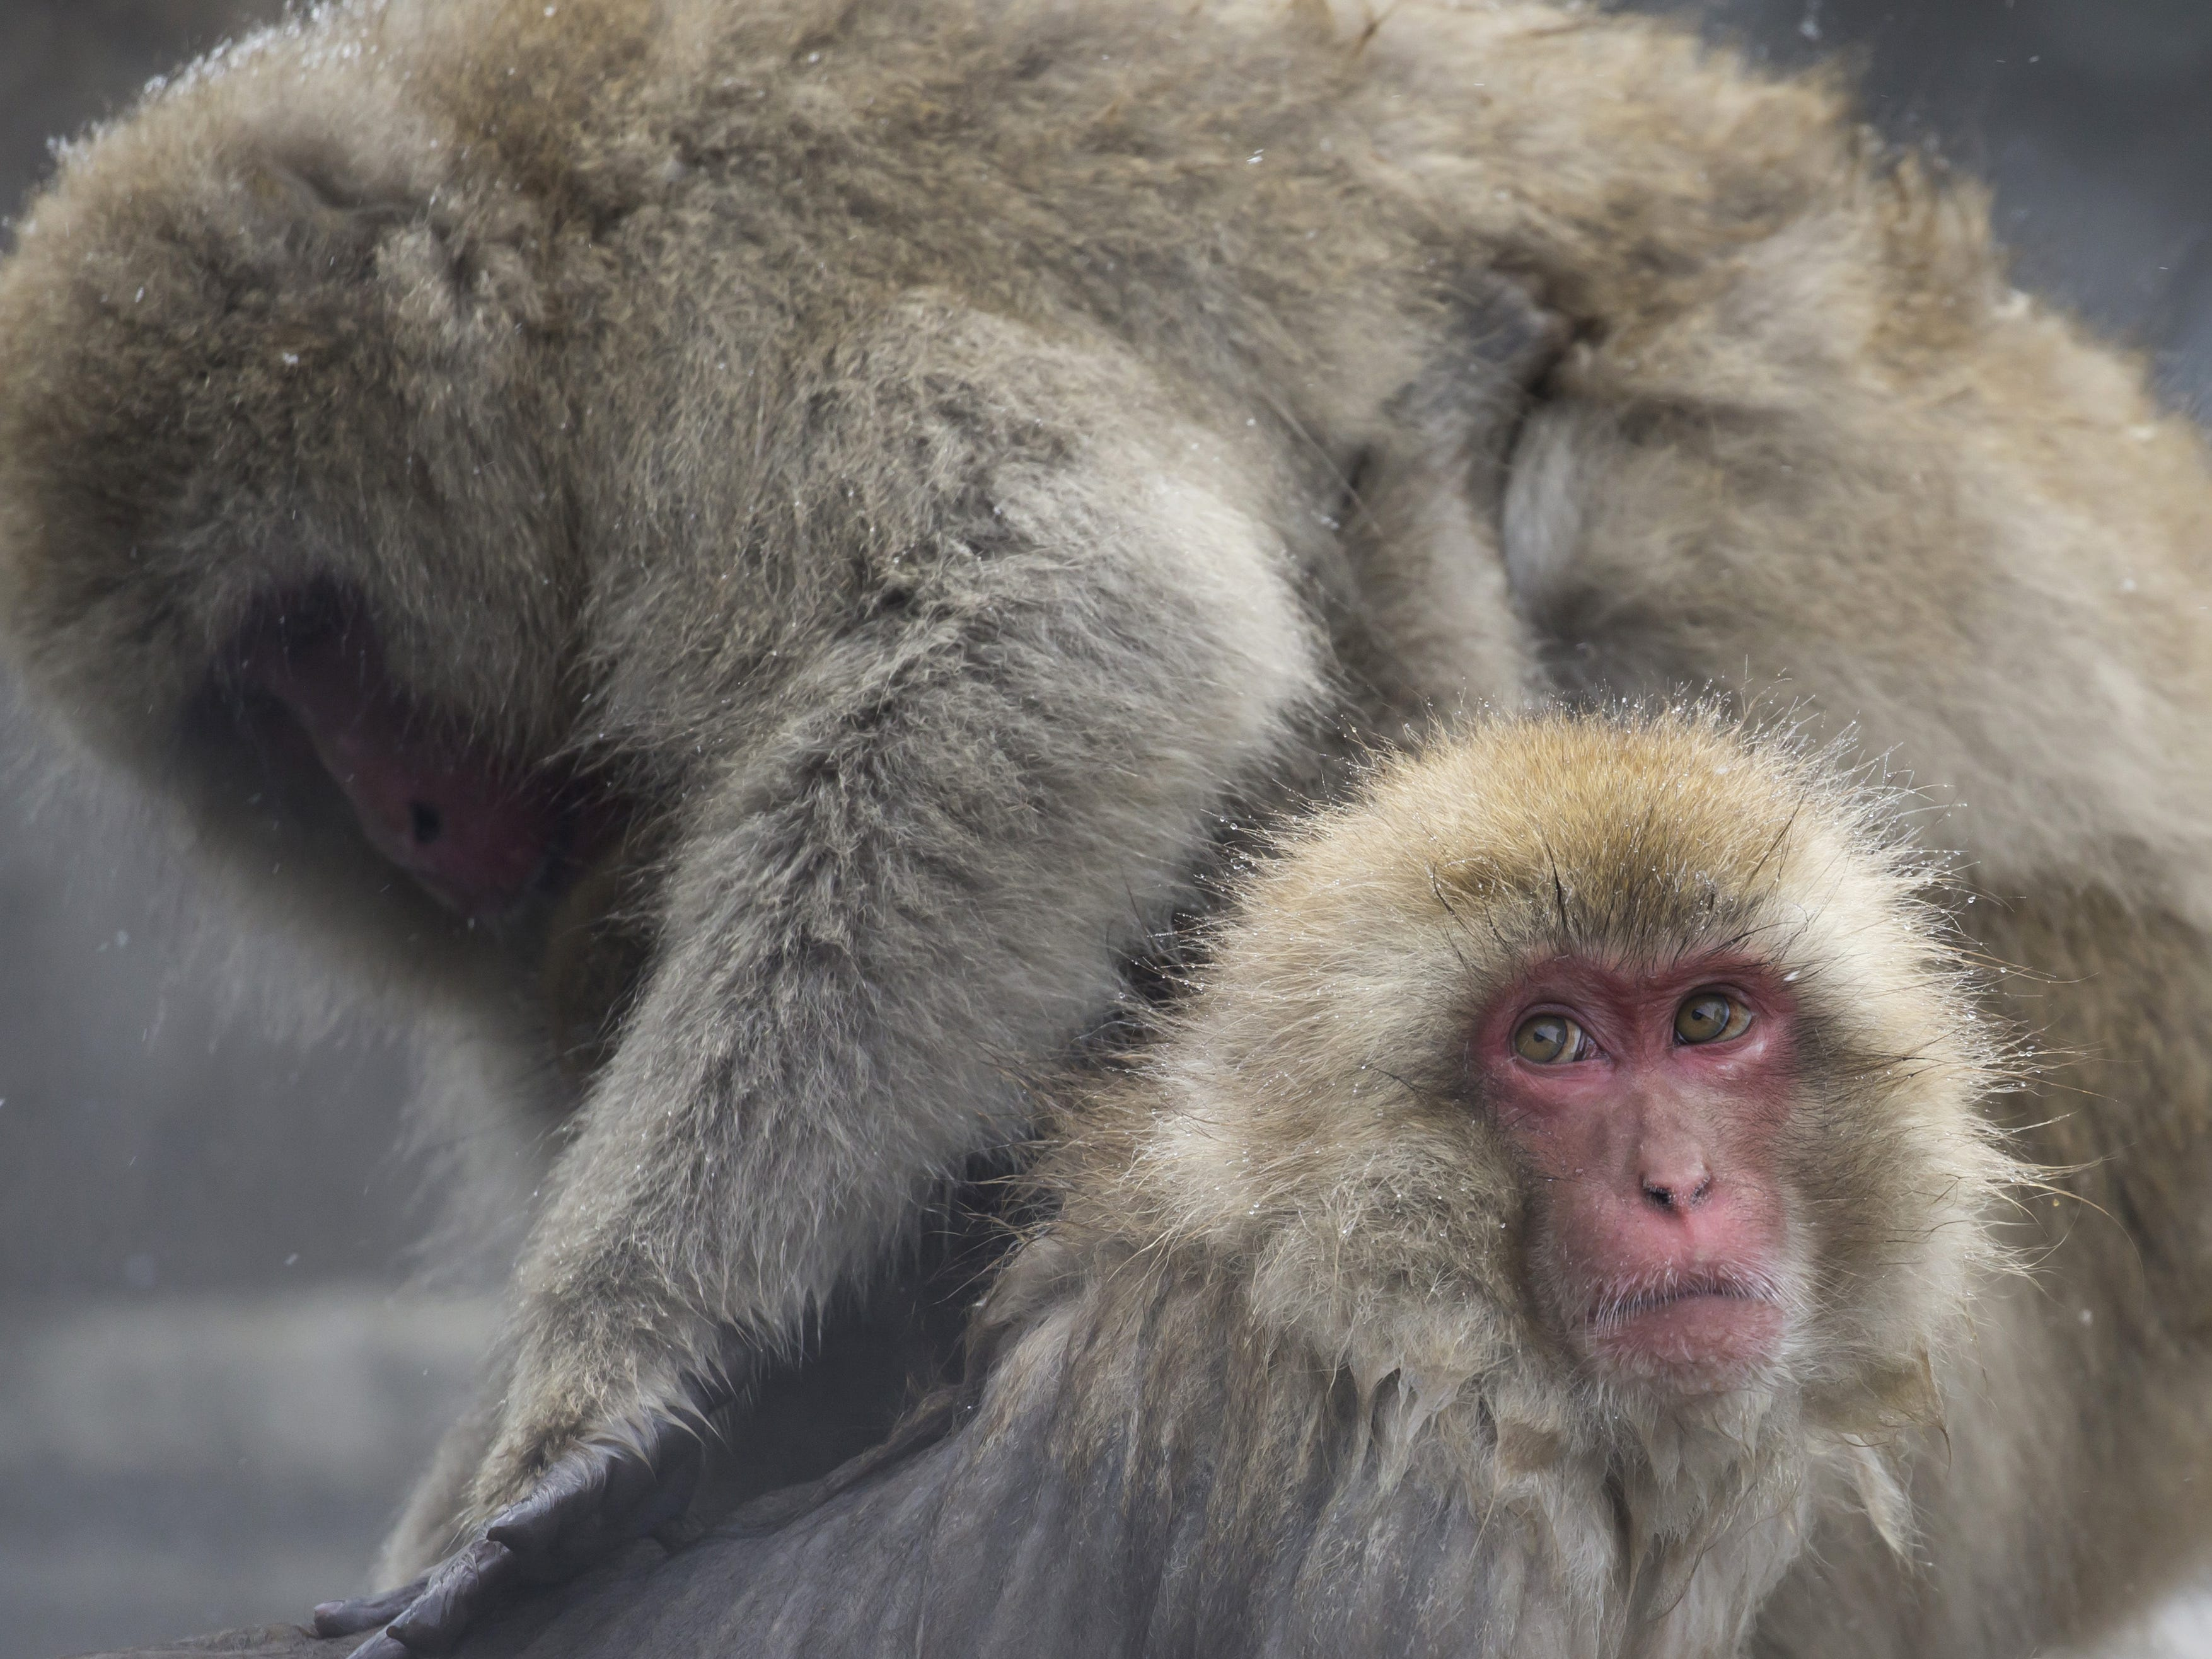 YAMANOUCHI, JAPAN - FEBRUARY 08: Macaque monkeys bathe in a hot spring at the Jigokudani Yaen-koen wild Macaque monkey park on February 8, 2019 in Yamanouchi, Japan. The wild Japanese macaques are known as snow monkeys, according to the park's official website. (Photo by Tomohiro Ohsumi/Getty Images) ORG XMIT: 775292339 ORIG FILE ID: 1128215908